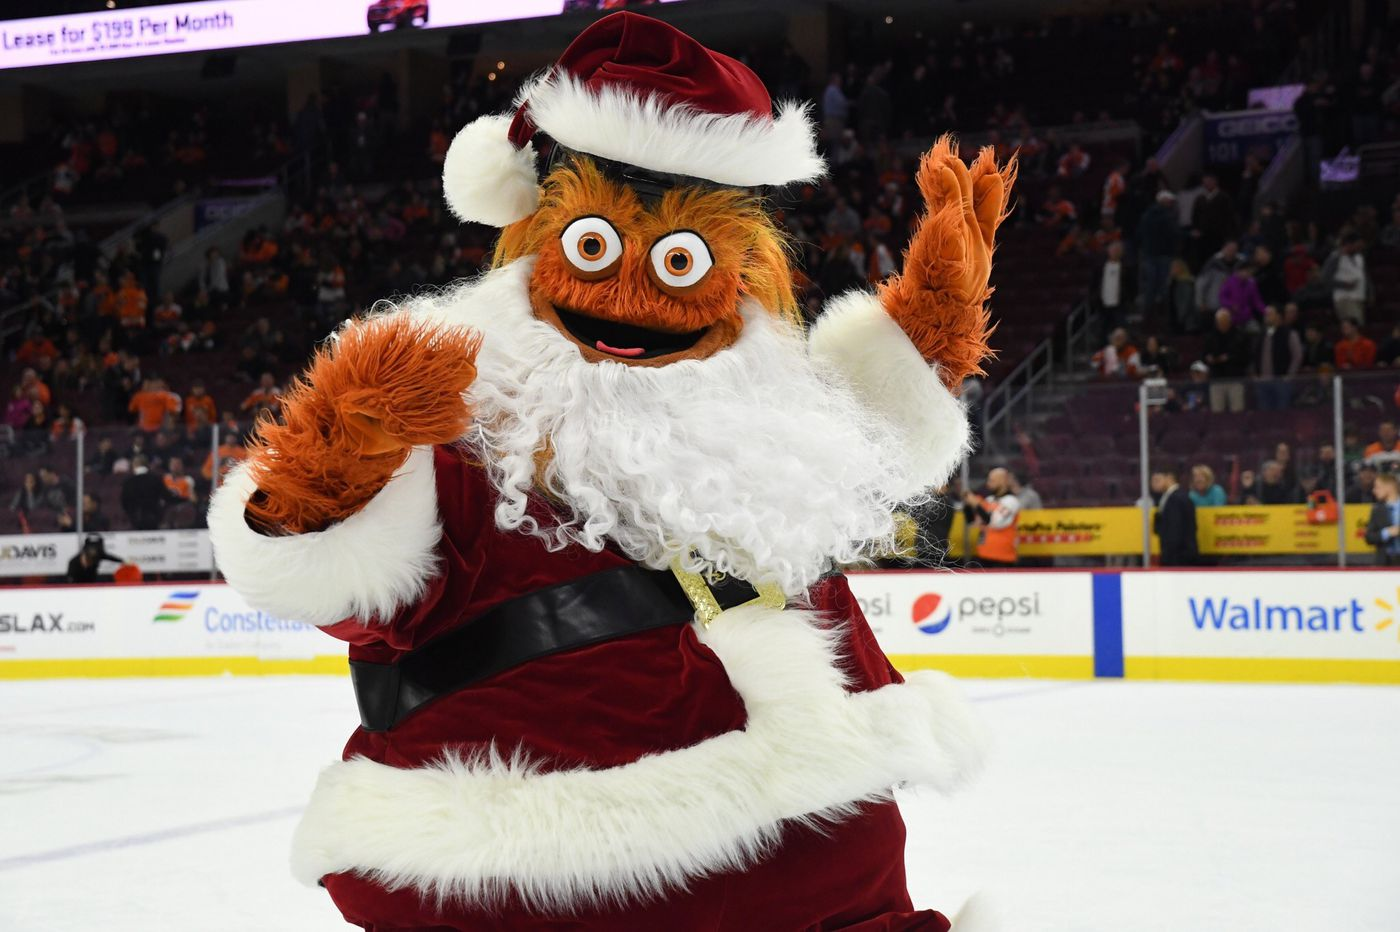 Kids can see Santa, Gritty, and part of the 'Nutcracker' together at the Kimmel Center in Dec.